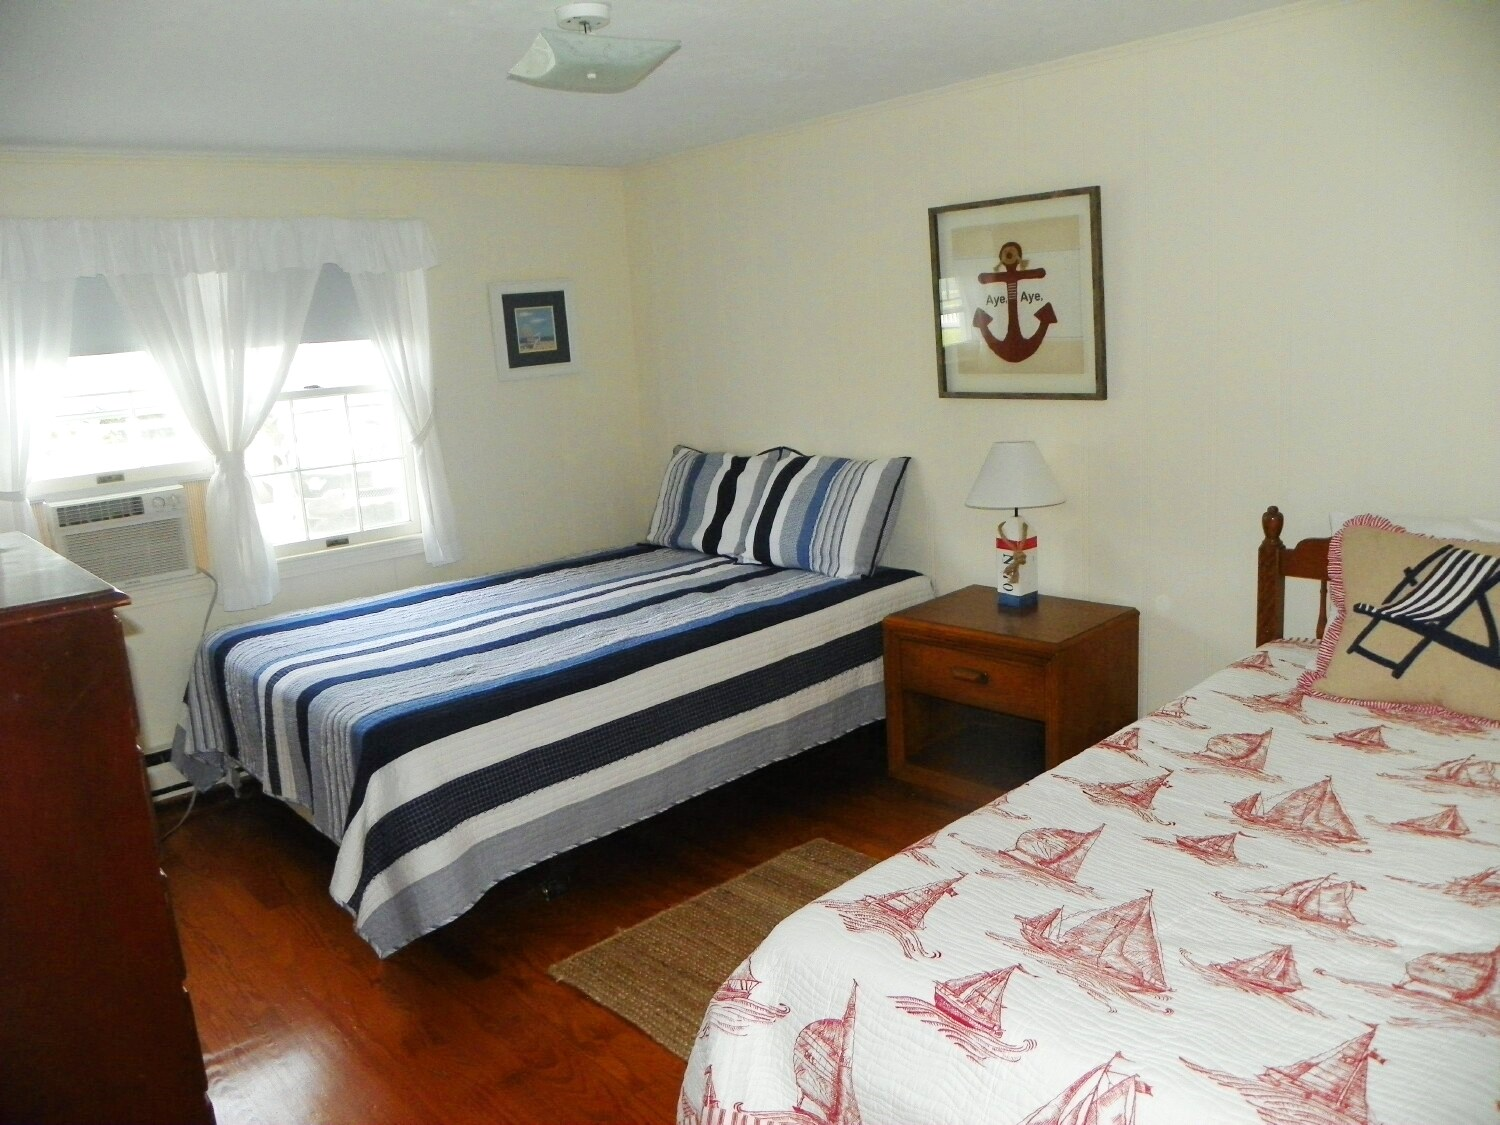 Second Bedroom at 6 Captain Keavy Way, West Dennis, MA for sale by Cranberry Real Estate 508-394-1700